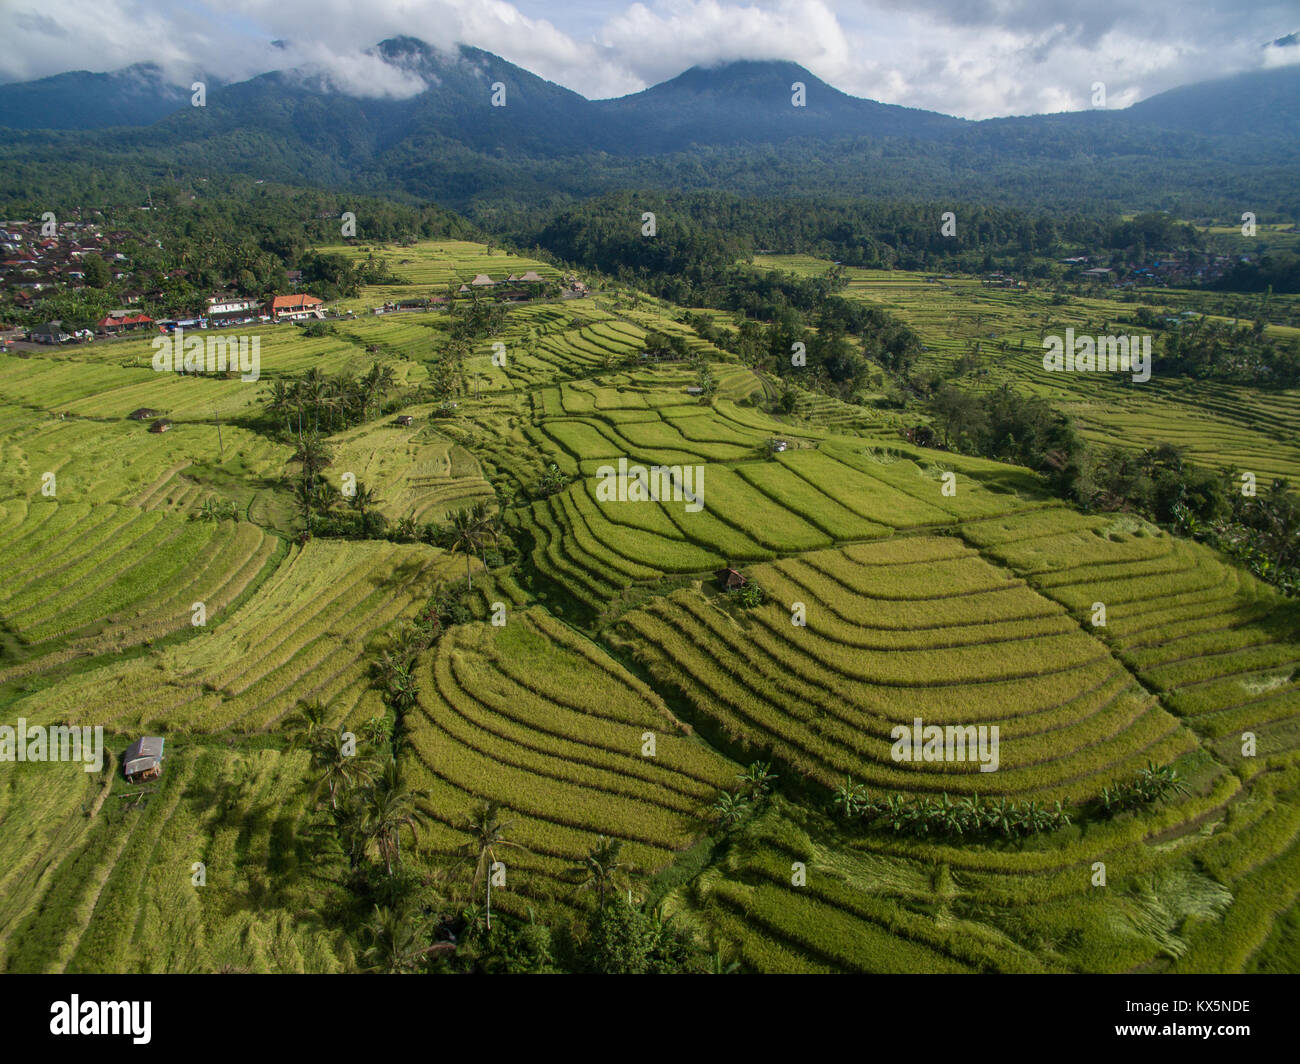 Bali UNESCO World Heritages Jatiluwih Rice Terrace, famous tourist destination in west part of Bali featured by - Stock Image